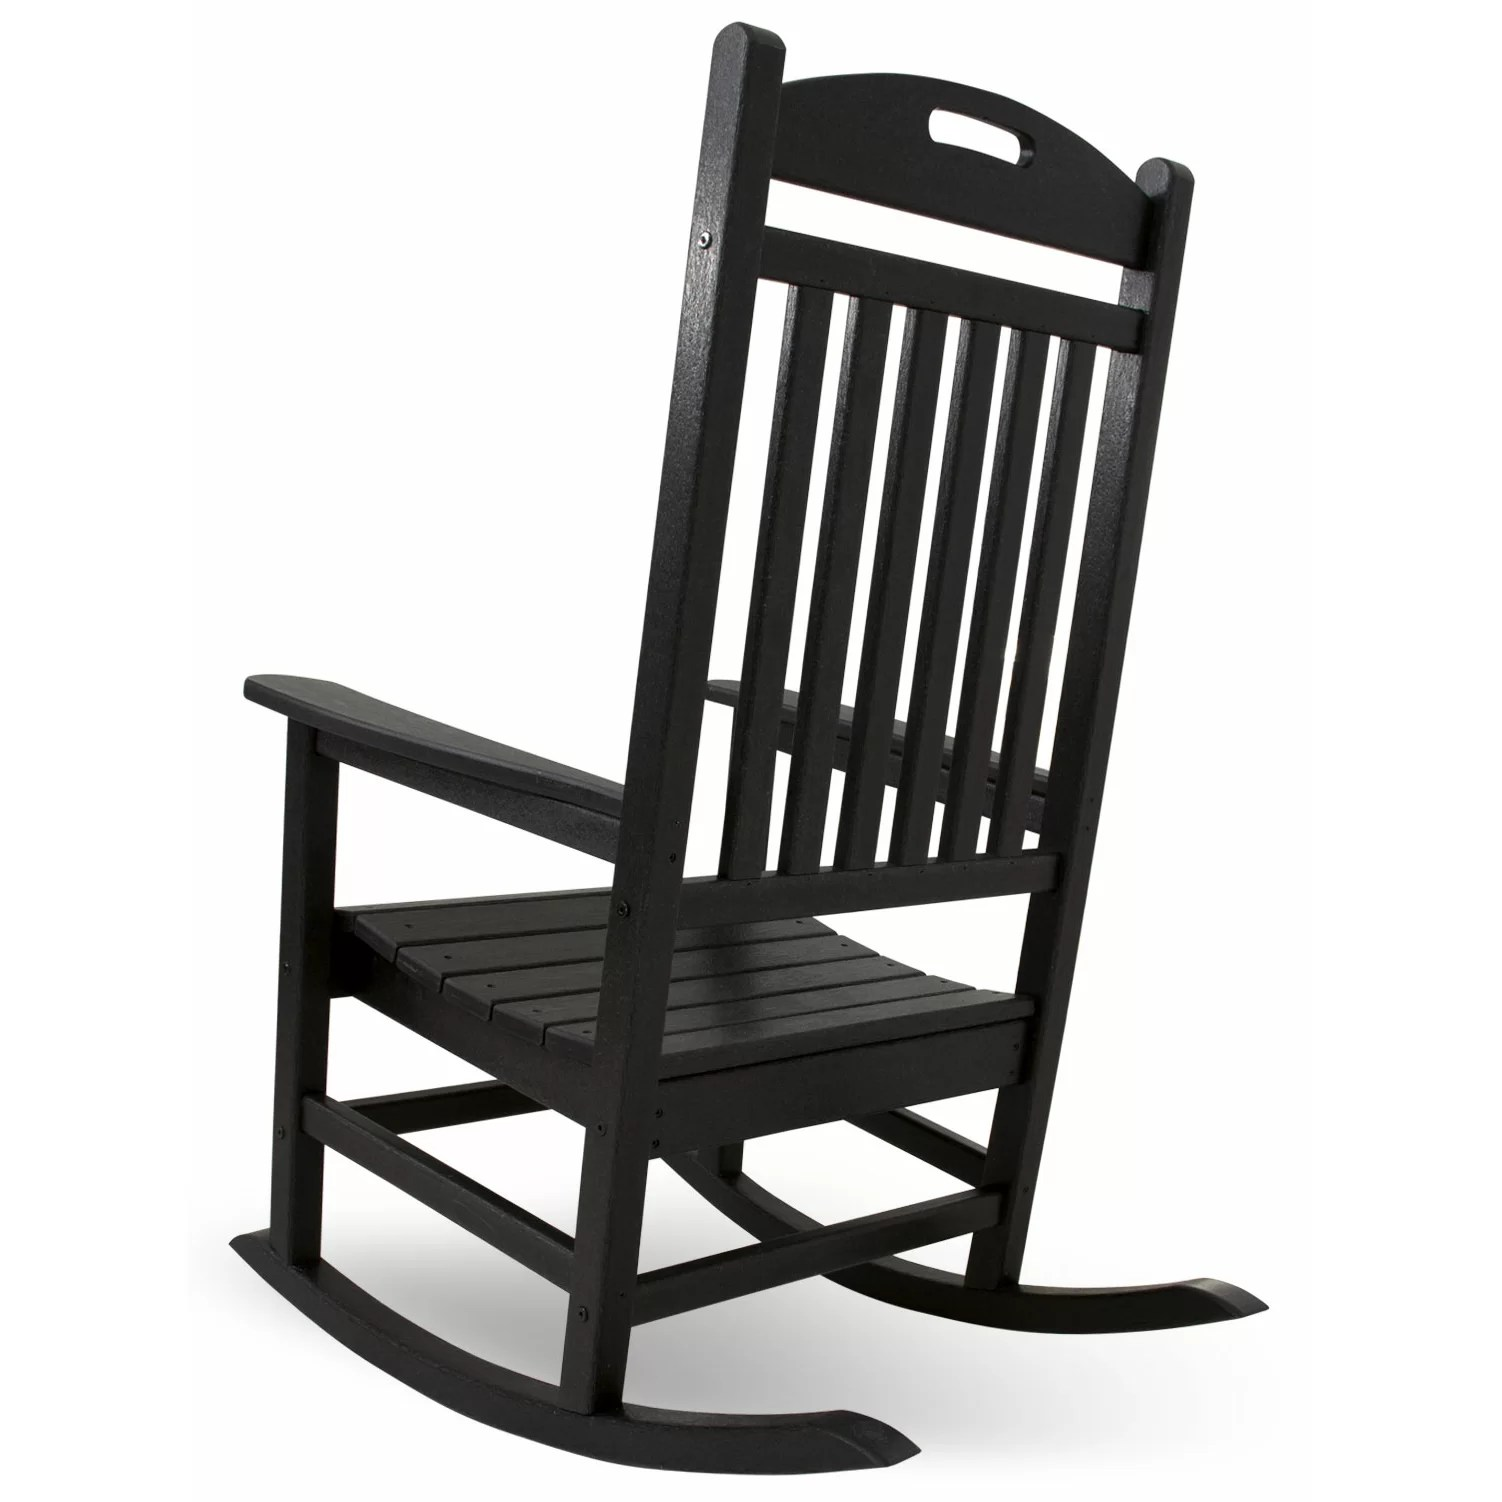 Trex Rocking Chairs Polywood Yacht Club Rocking Chair And Reviews Wayfair